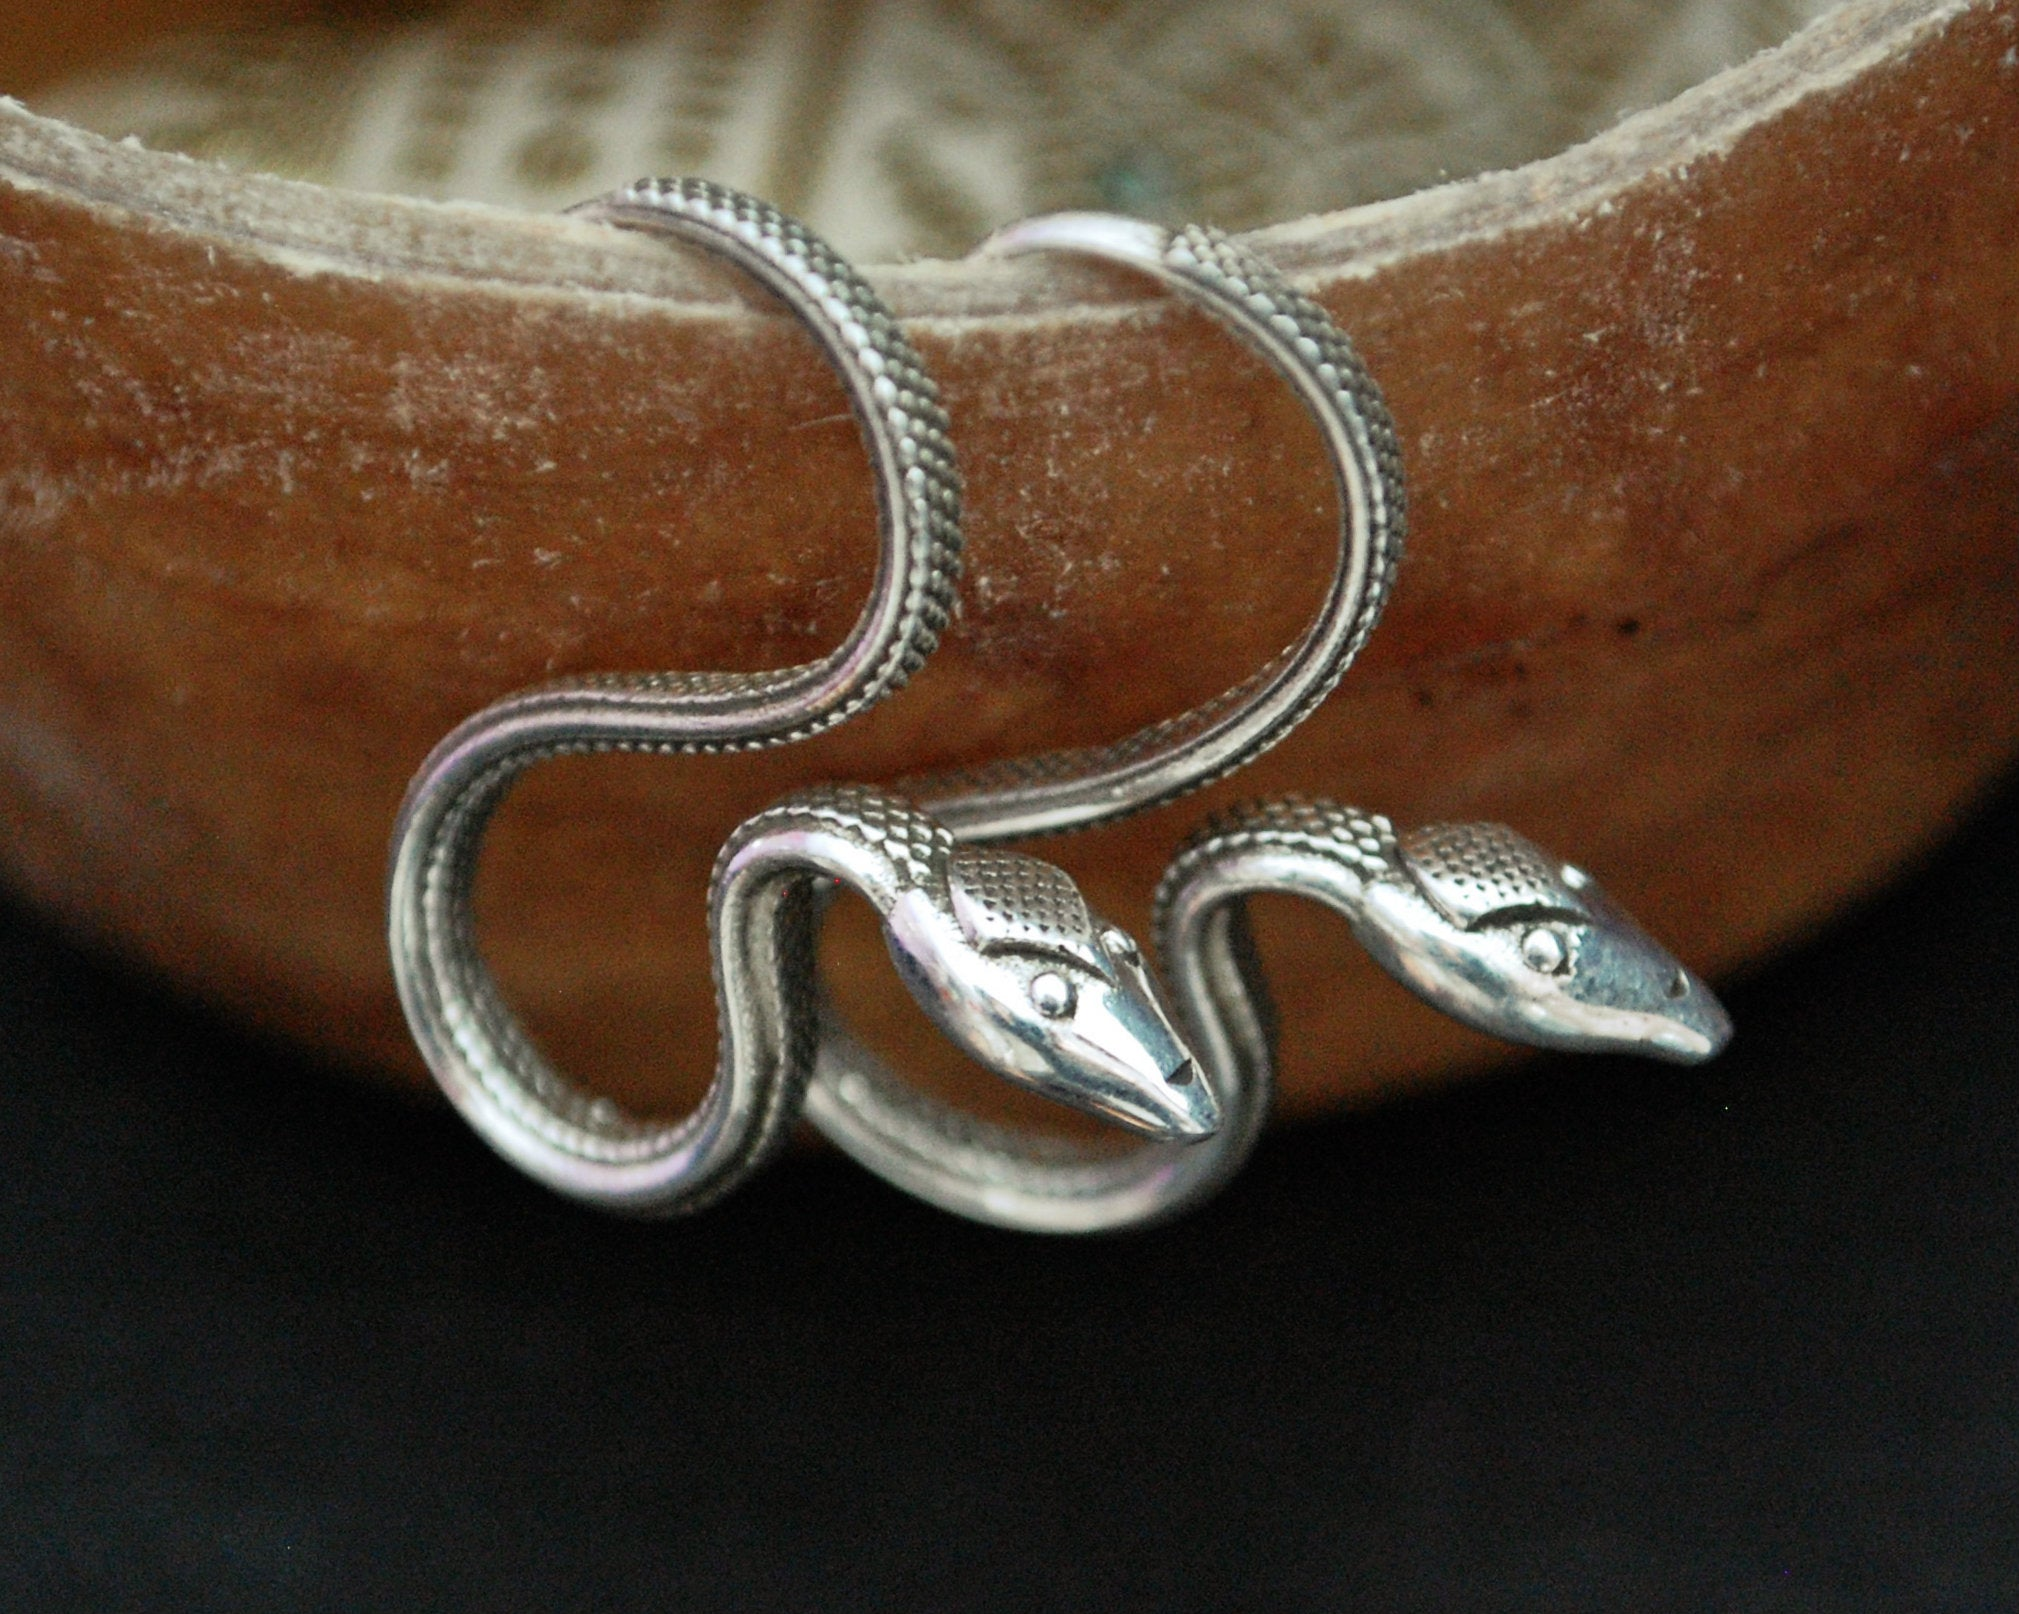 Snake Earrings - Silver Snake Earrings